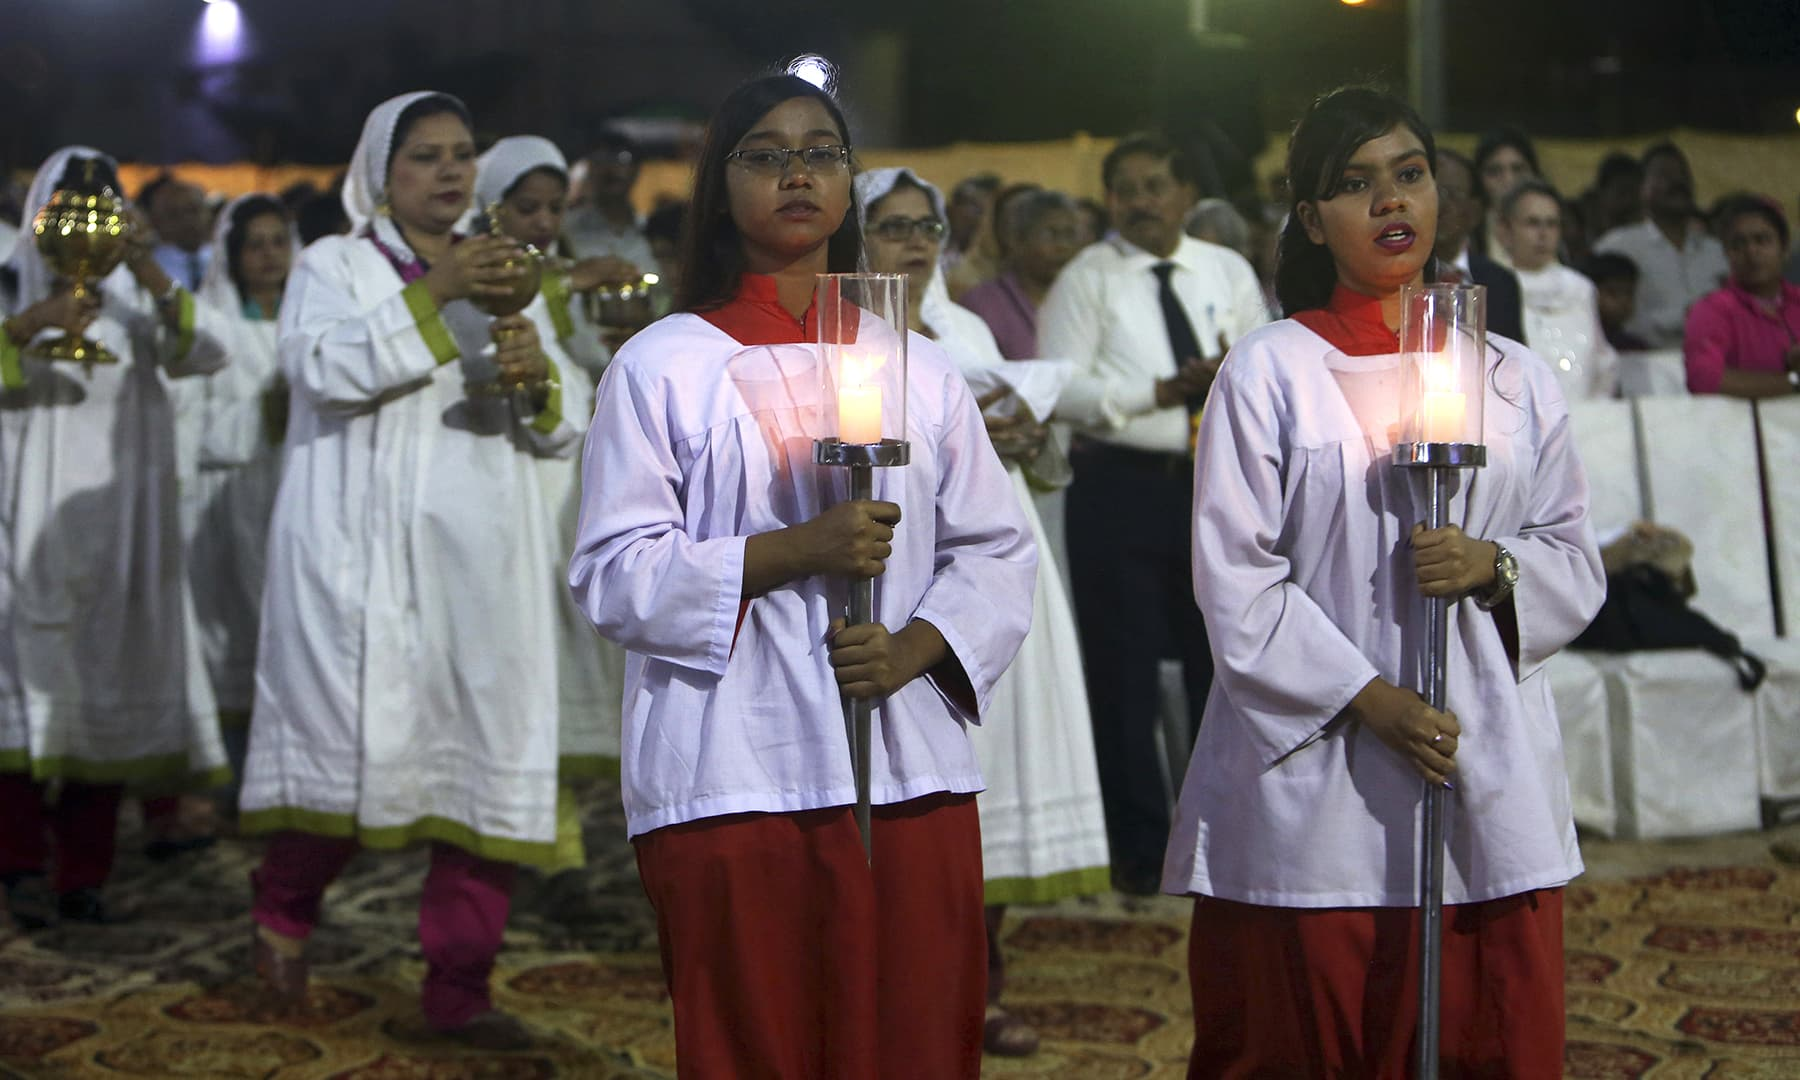 Christians carry candles during an early morning Easter mass at St Patrick's Church in Karachi. — AP